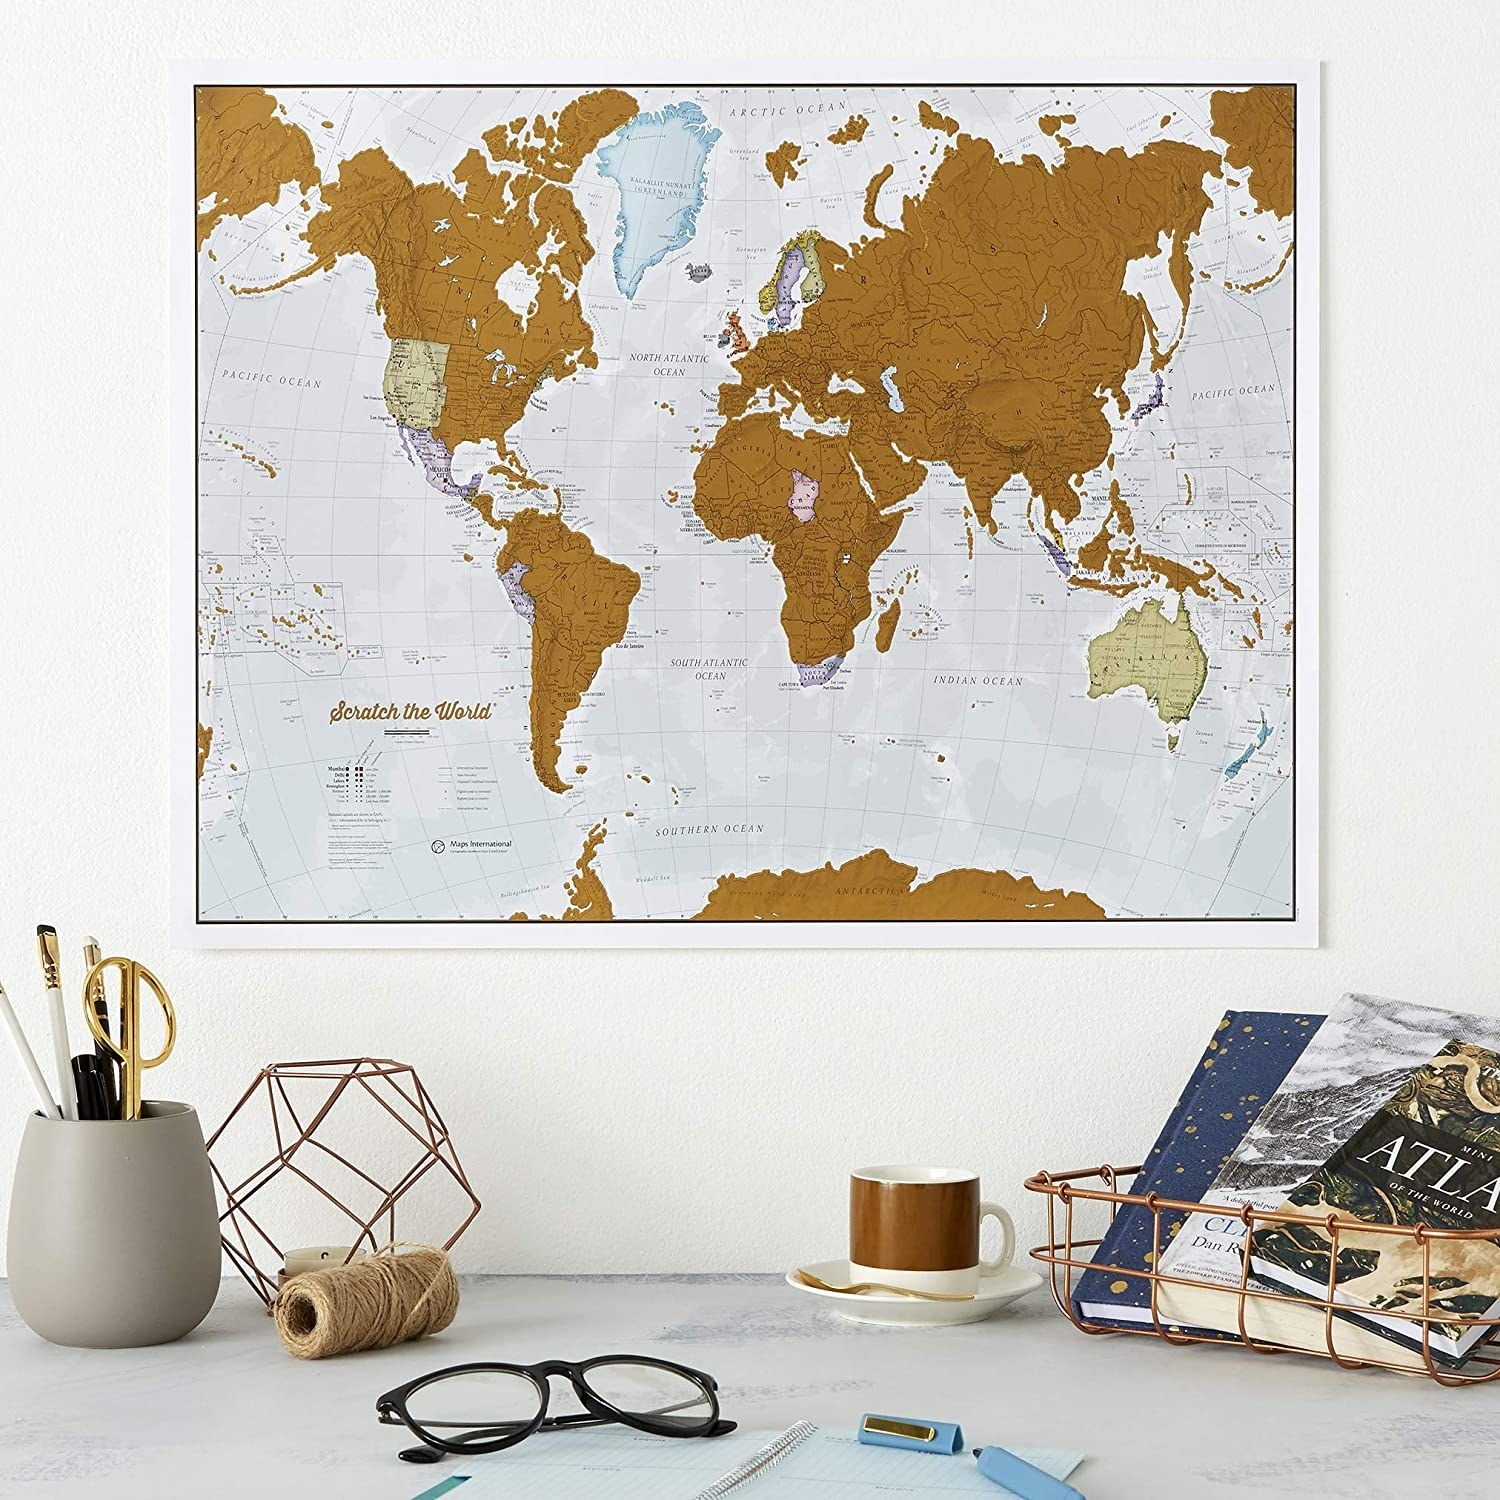 The world map hanging on a wall